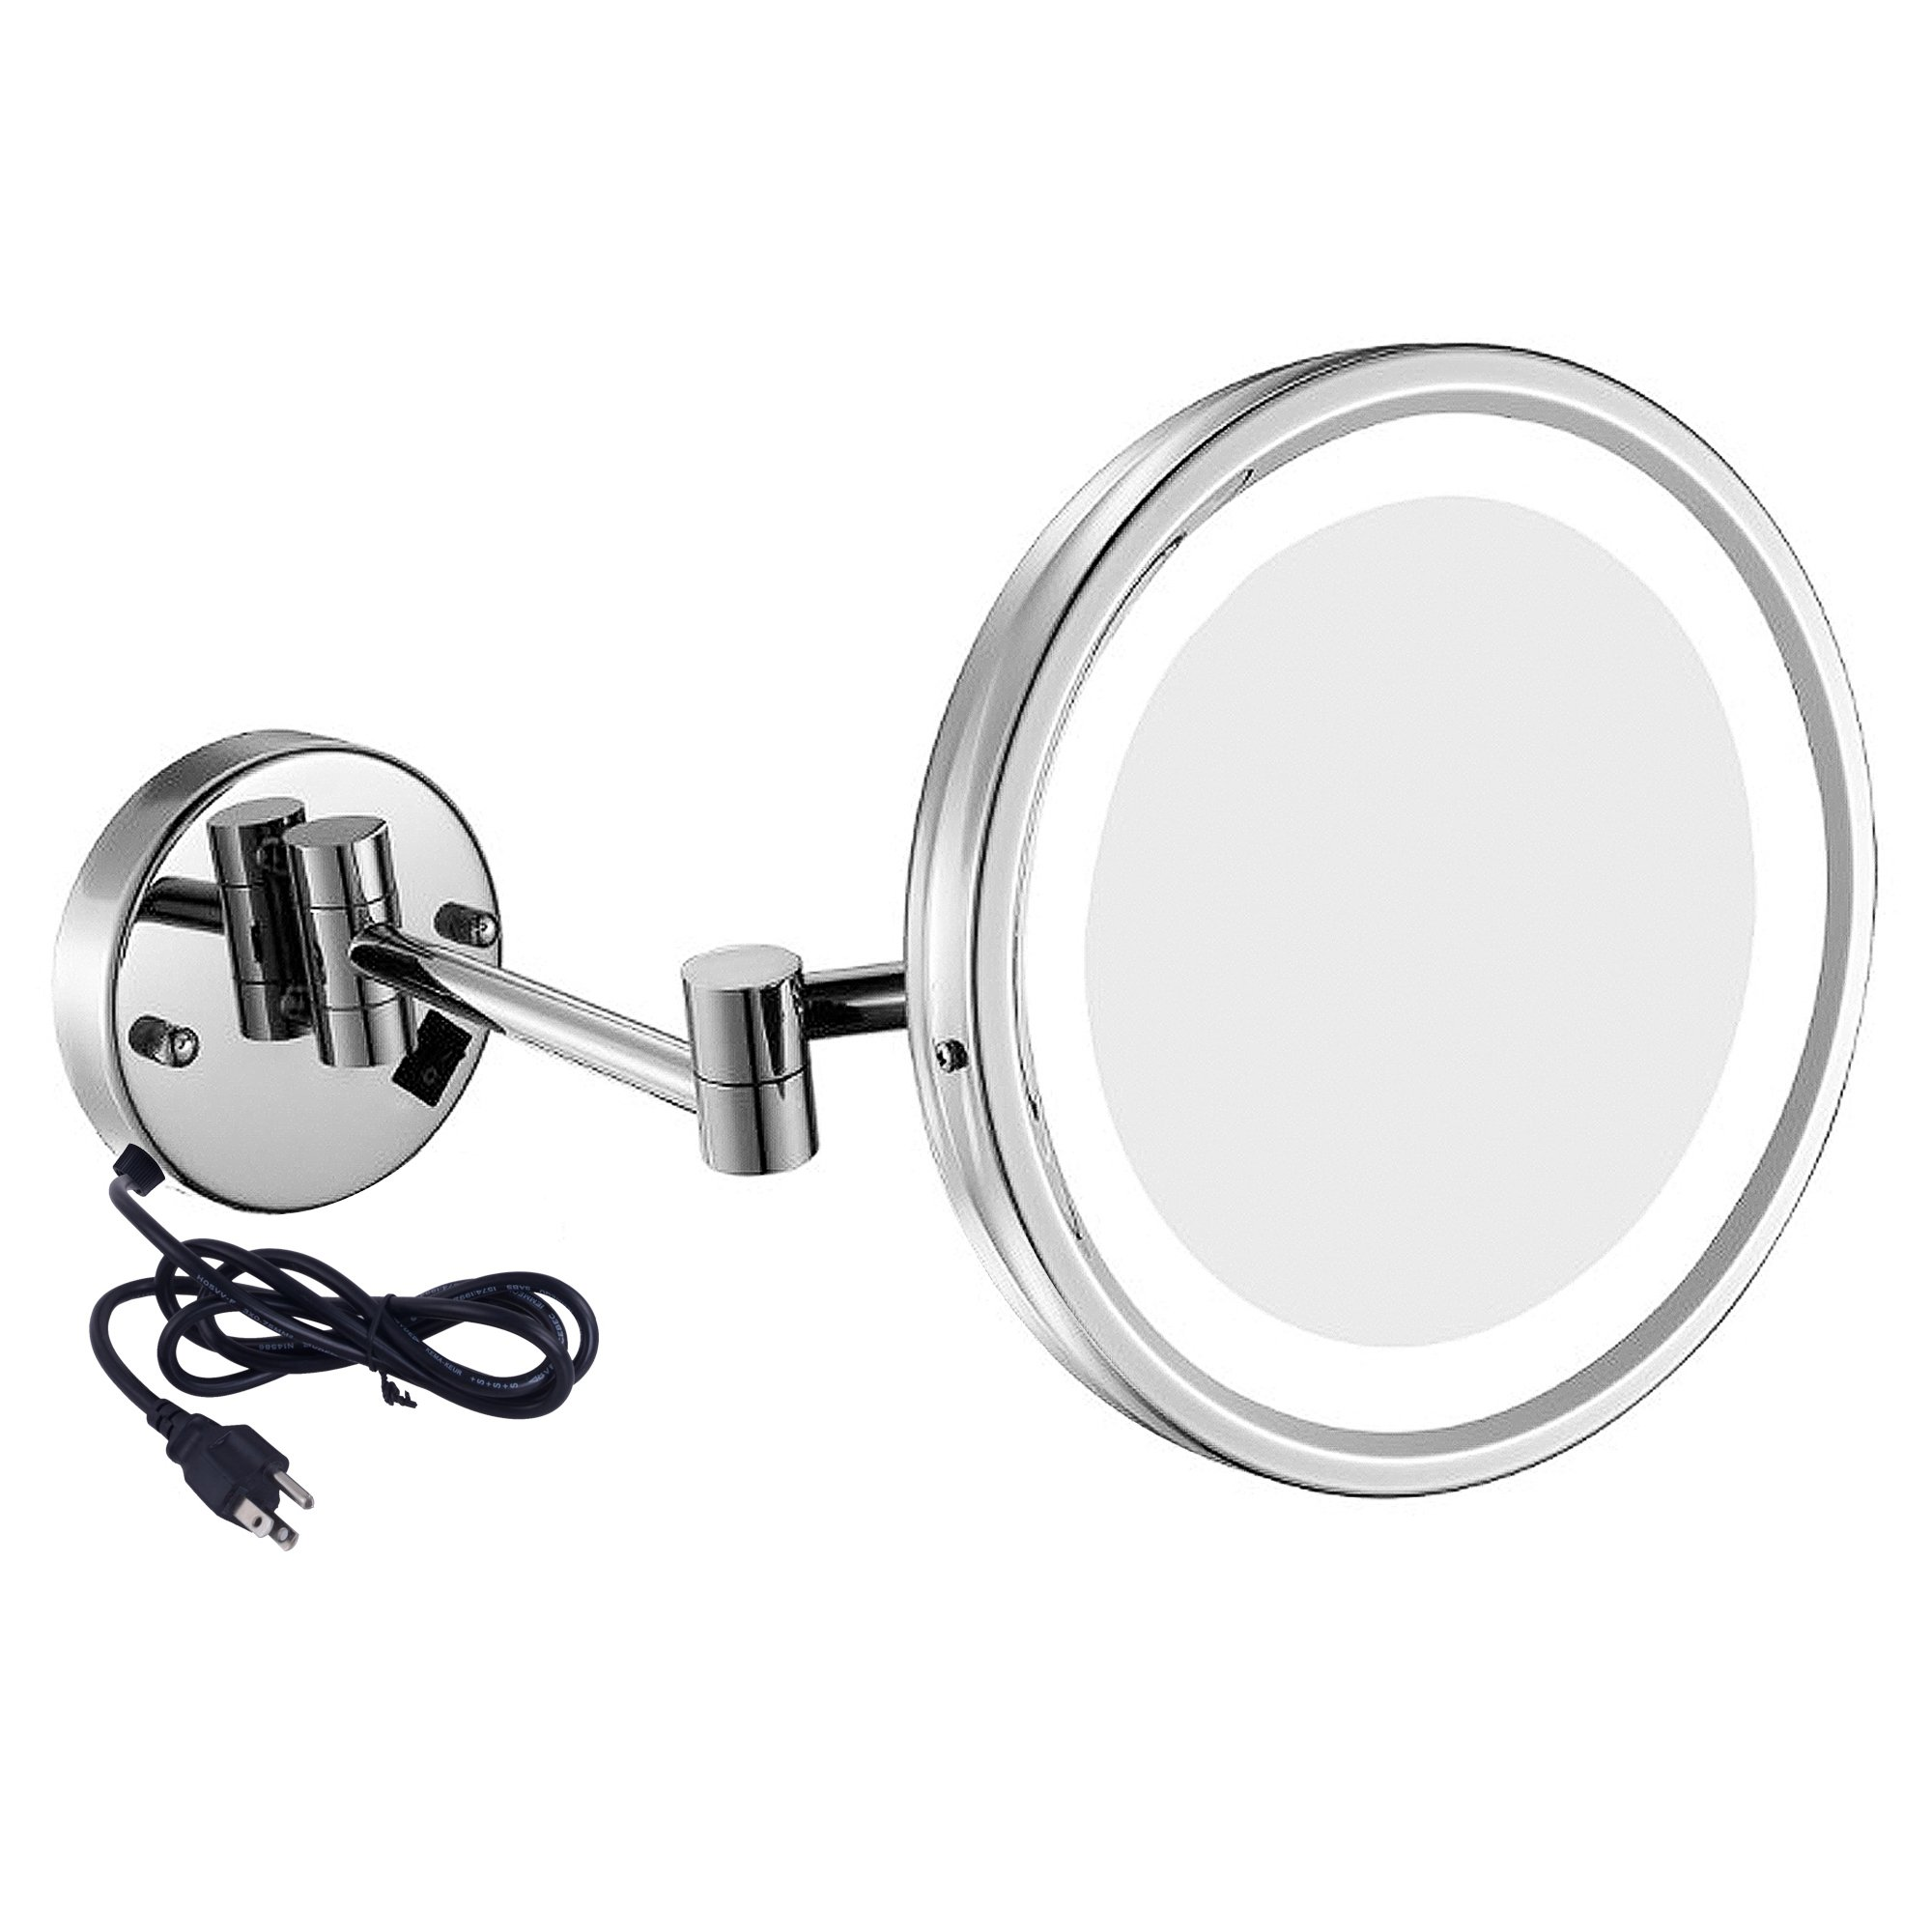 GuRun 10-Inch Adjustable LED Lighted Wall Mount Makeup Mirror with 10x Magnification,Chrome Finish,Plug M1807D(10in,10x)